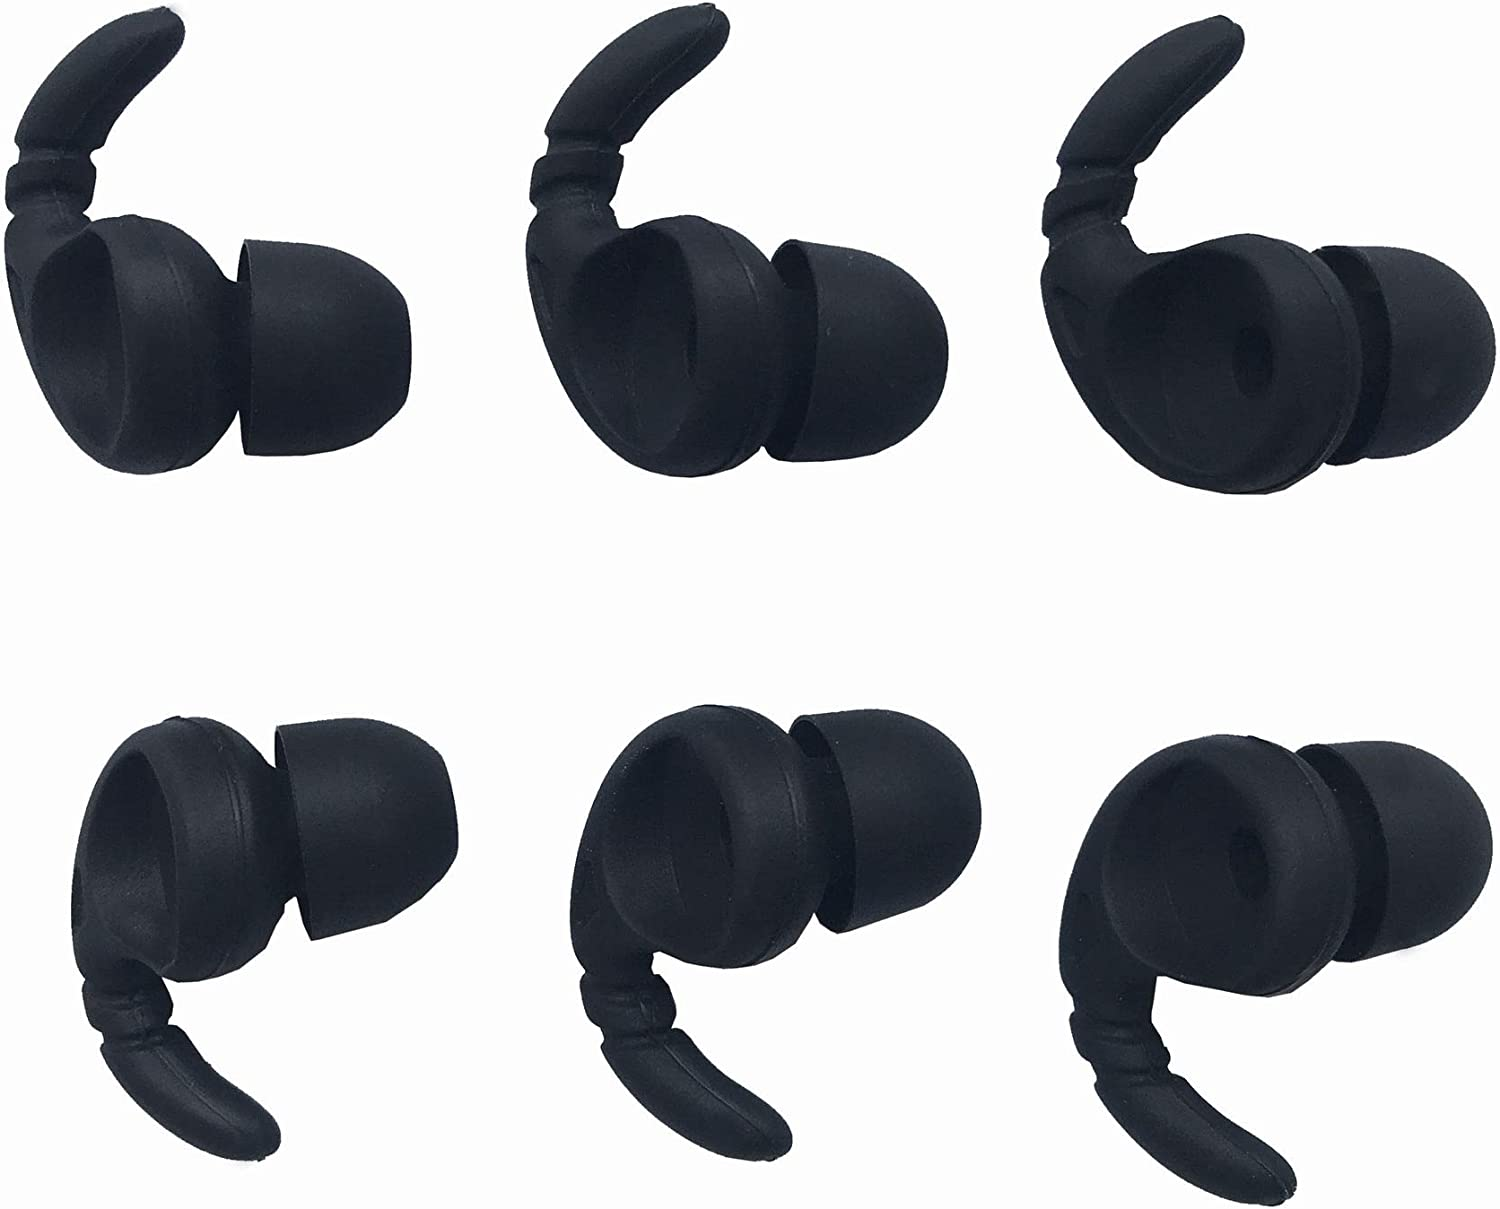 Sports Earbud Stabilizers Fins Wing Noise Isolation Replacement Eartips Adapters for in Ear Earphones 4mm to 6mm Nozzle Attachment 3 Pairs Left and Right Black